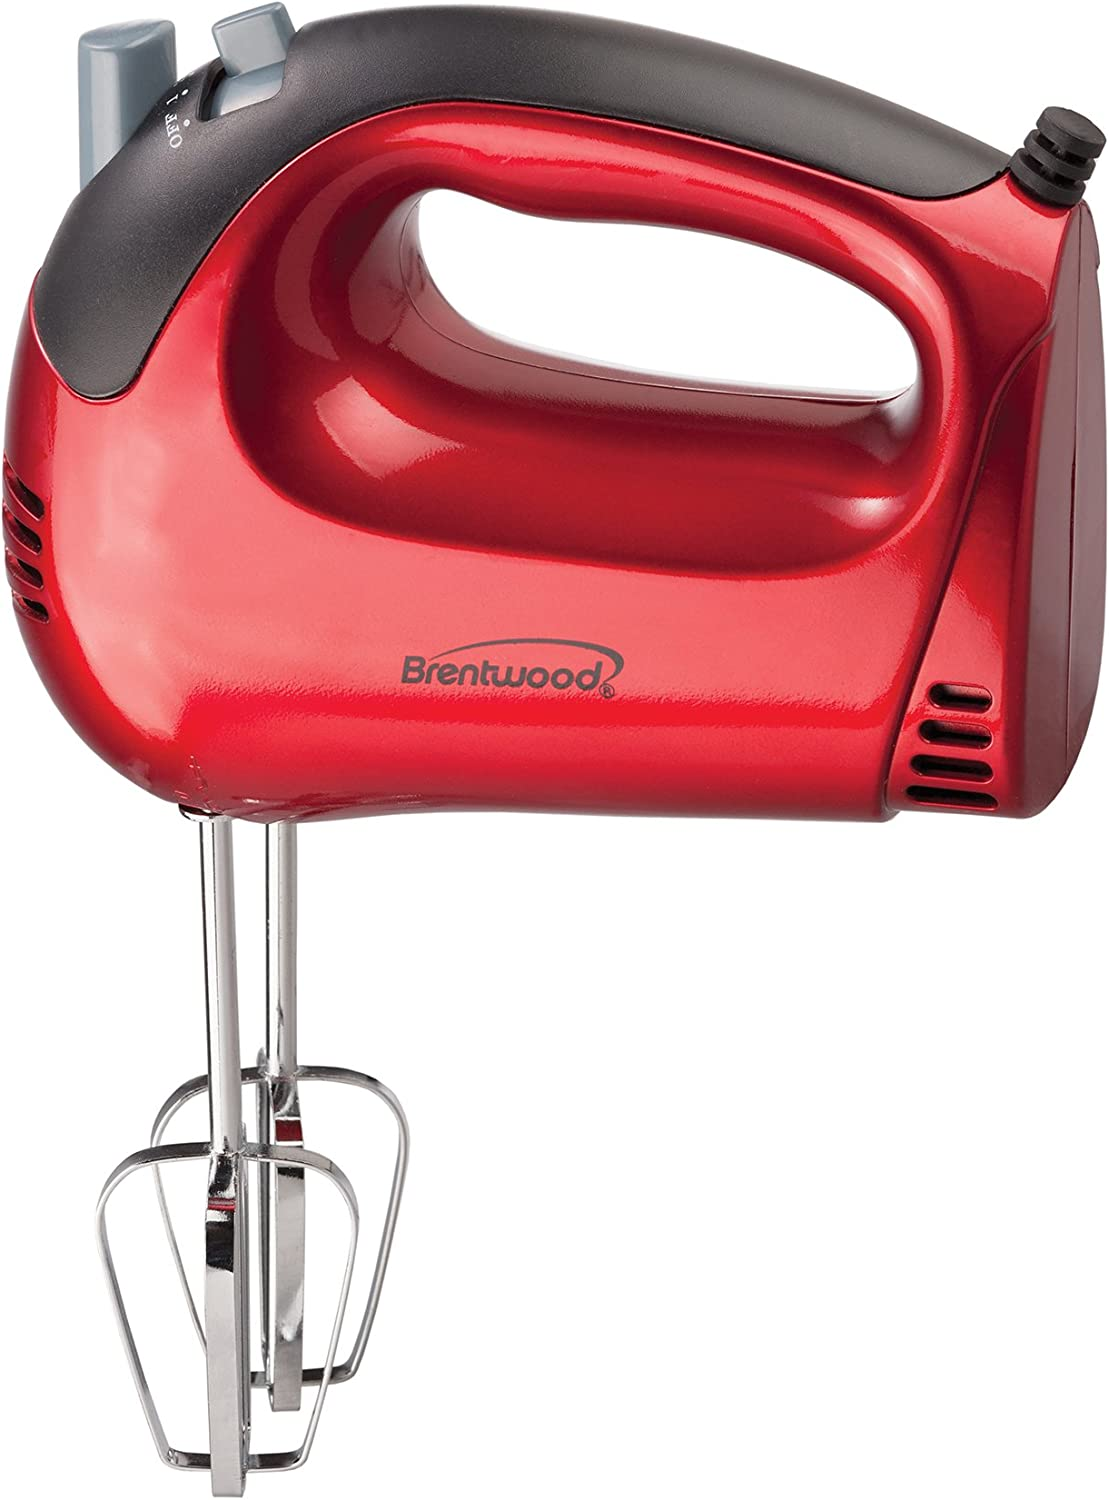 Brentwood HM-46 Electric Hand Mixer, Lightweight 5-Speed, Red